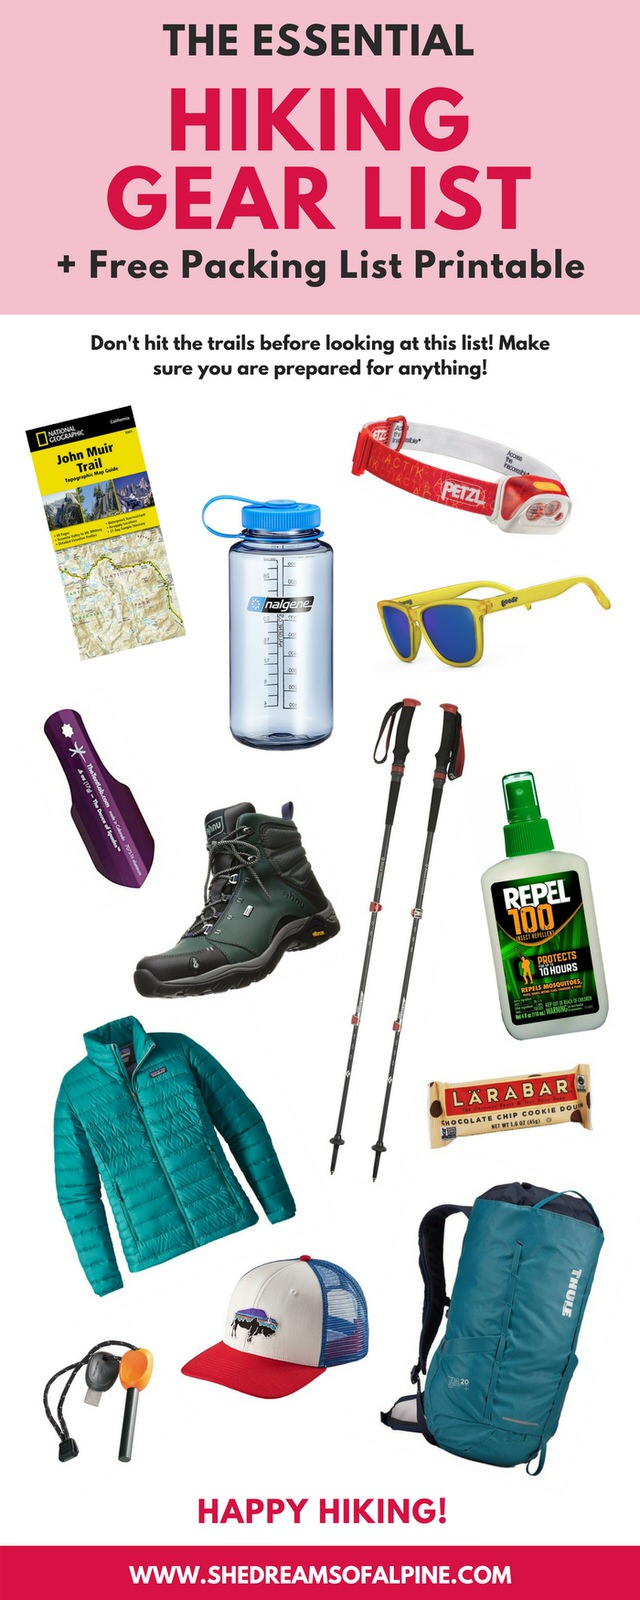 Hiking doesn't need to be overwhelming! In this post I've created a comprehensive packing list for essential hiking gear. Post includes free gear list printable for easy reference.